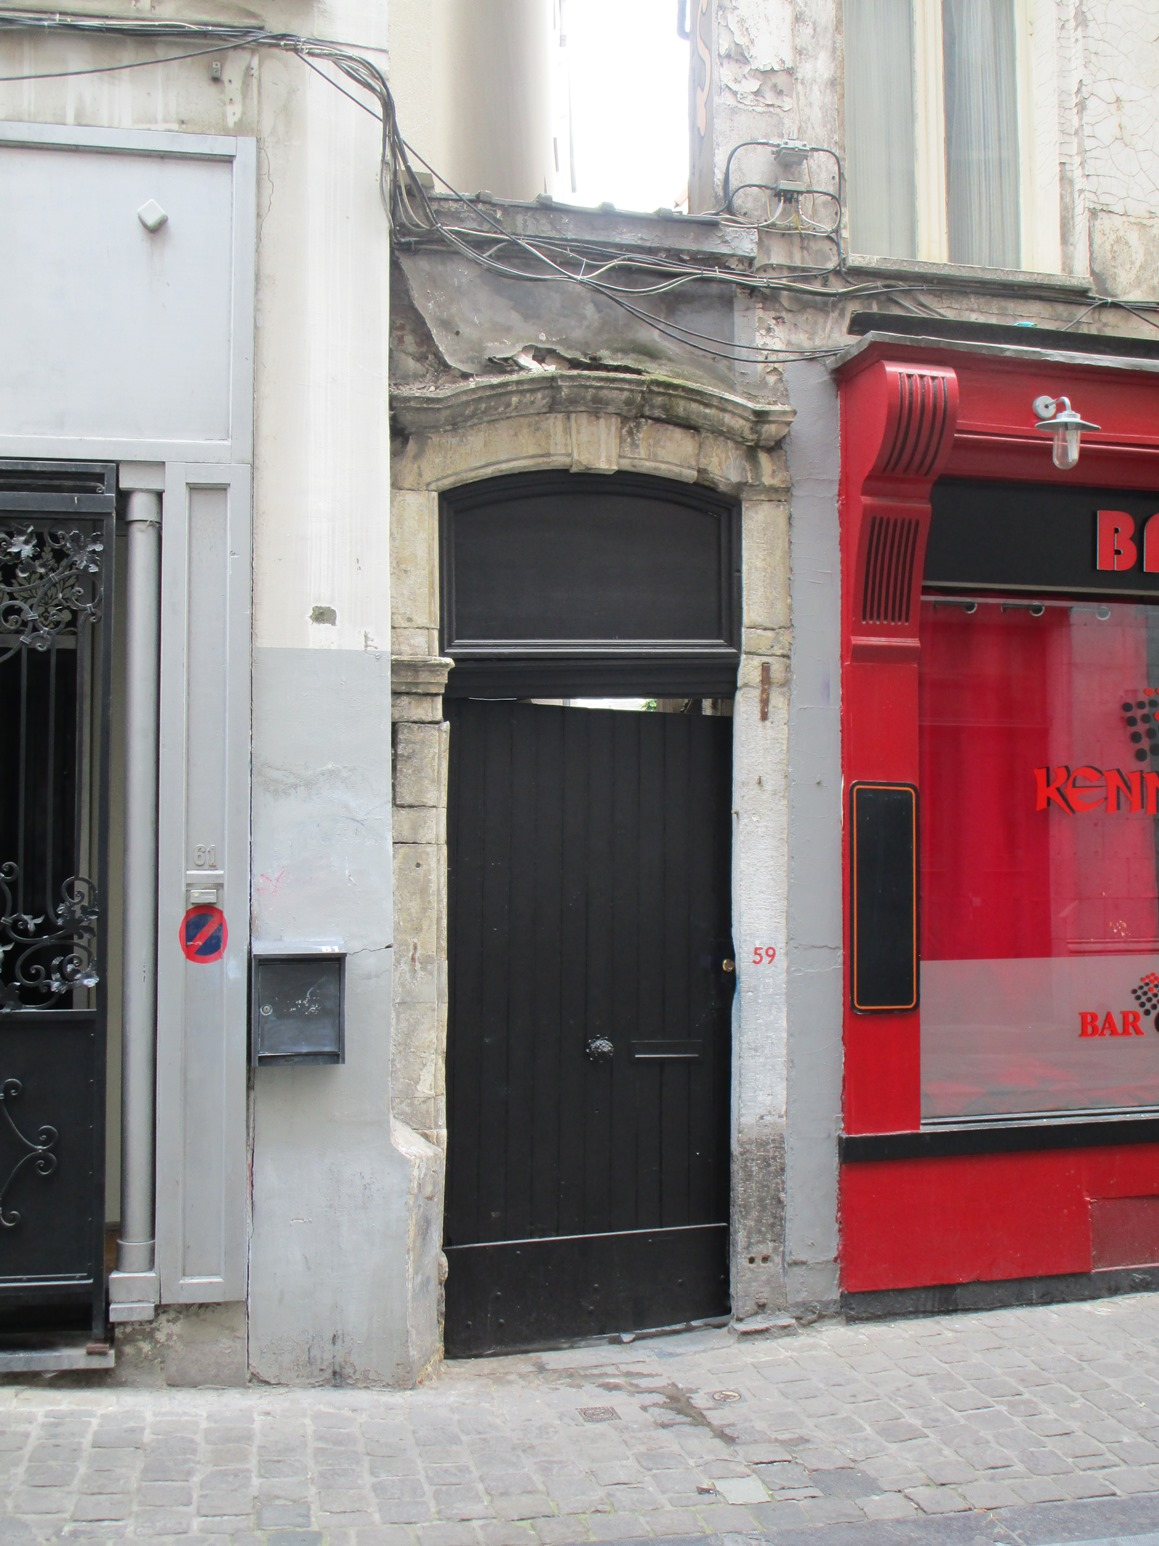 Rue des Eperonniers 59, 2015